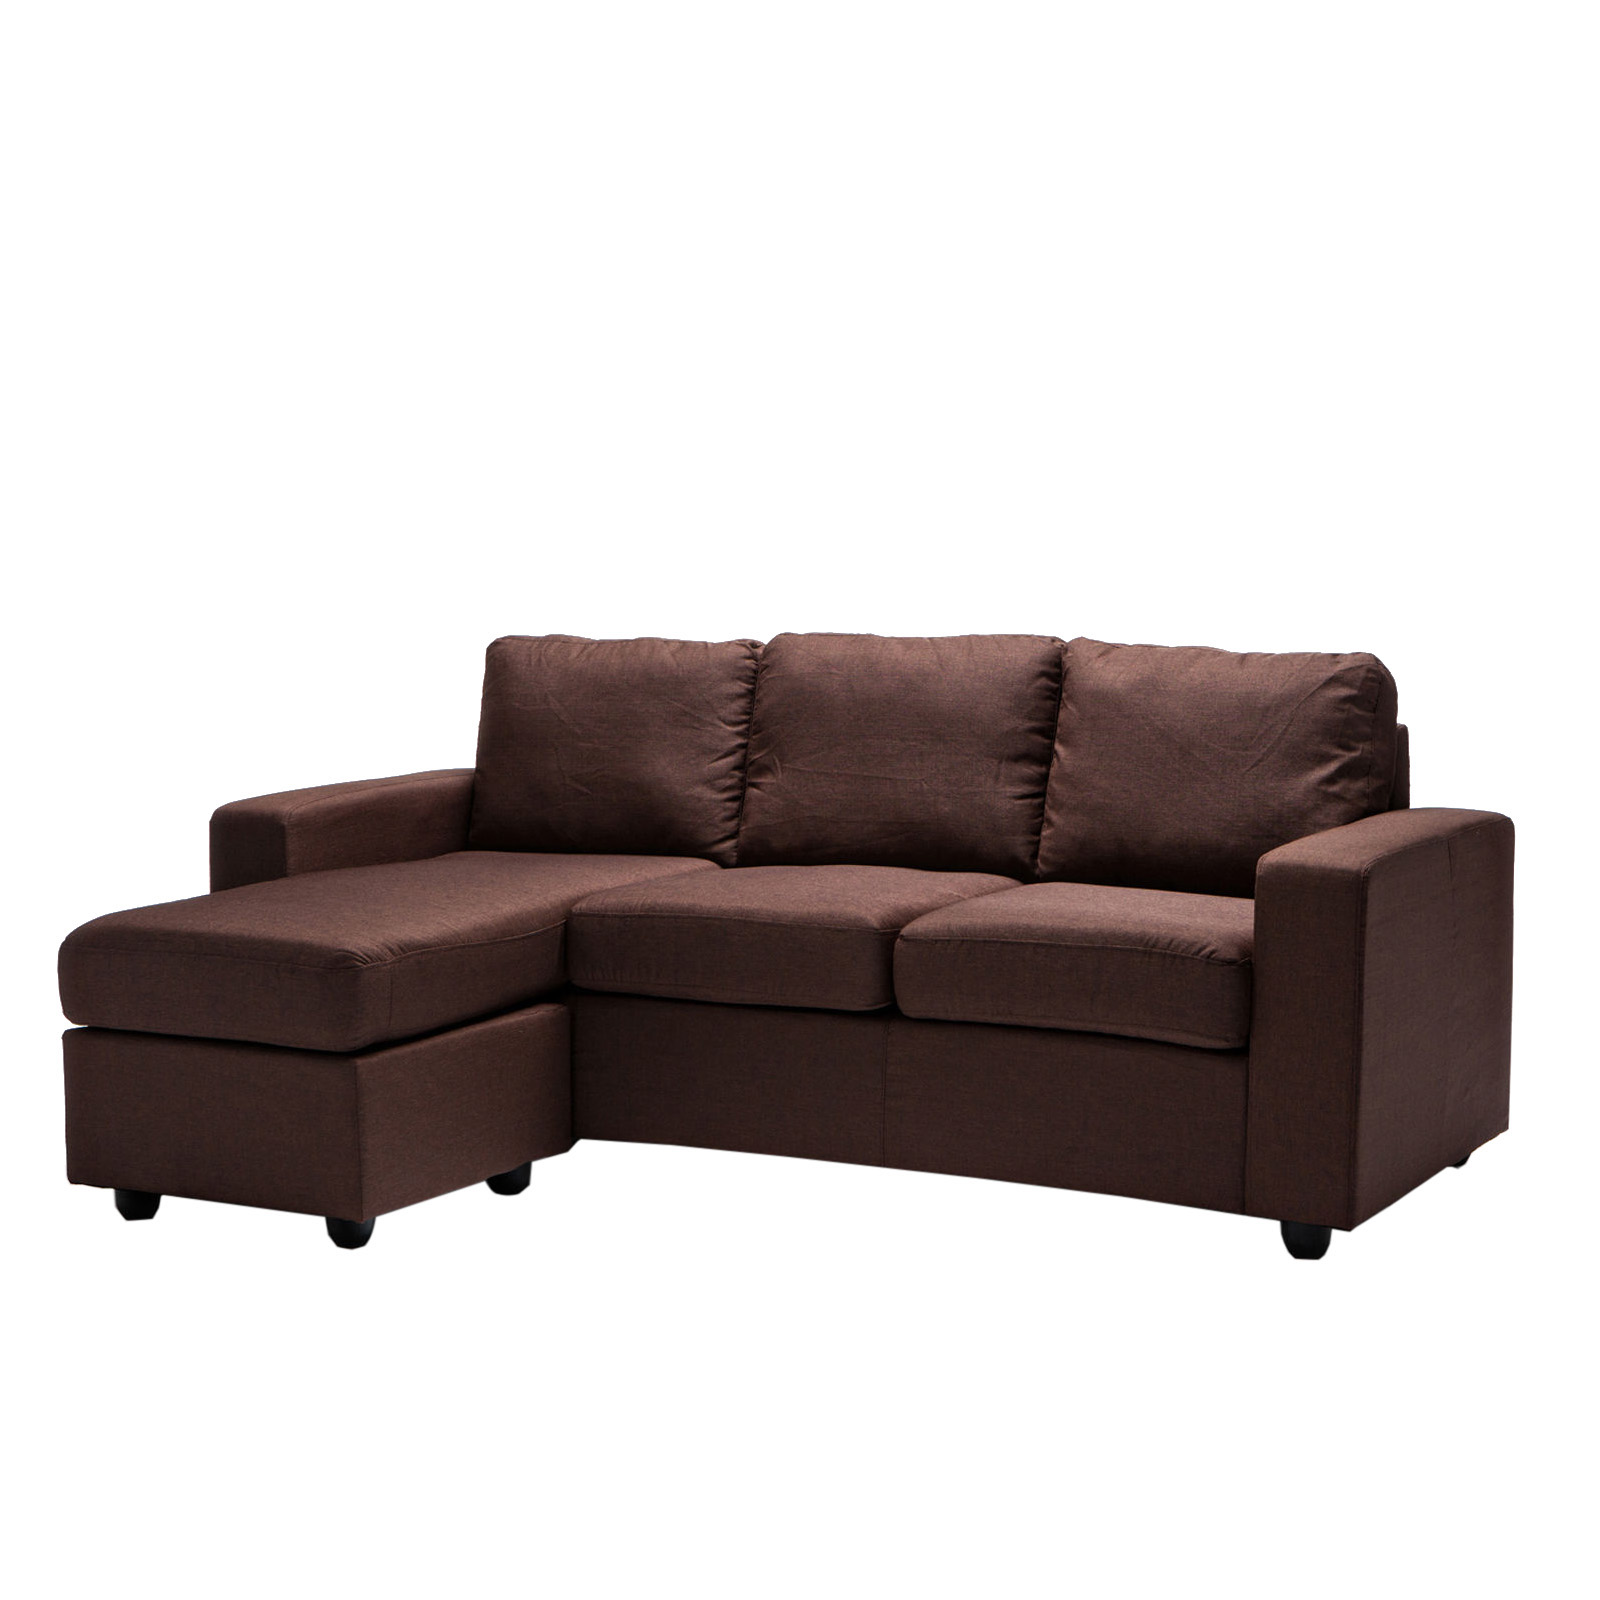 Ella 3 Seater L Shape Corner Lounge Modular Fabric Sofa Couch Chaise Ebay